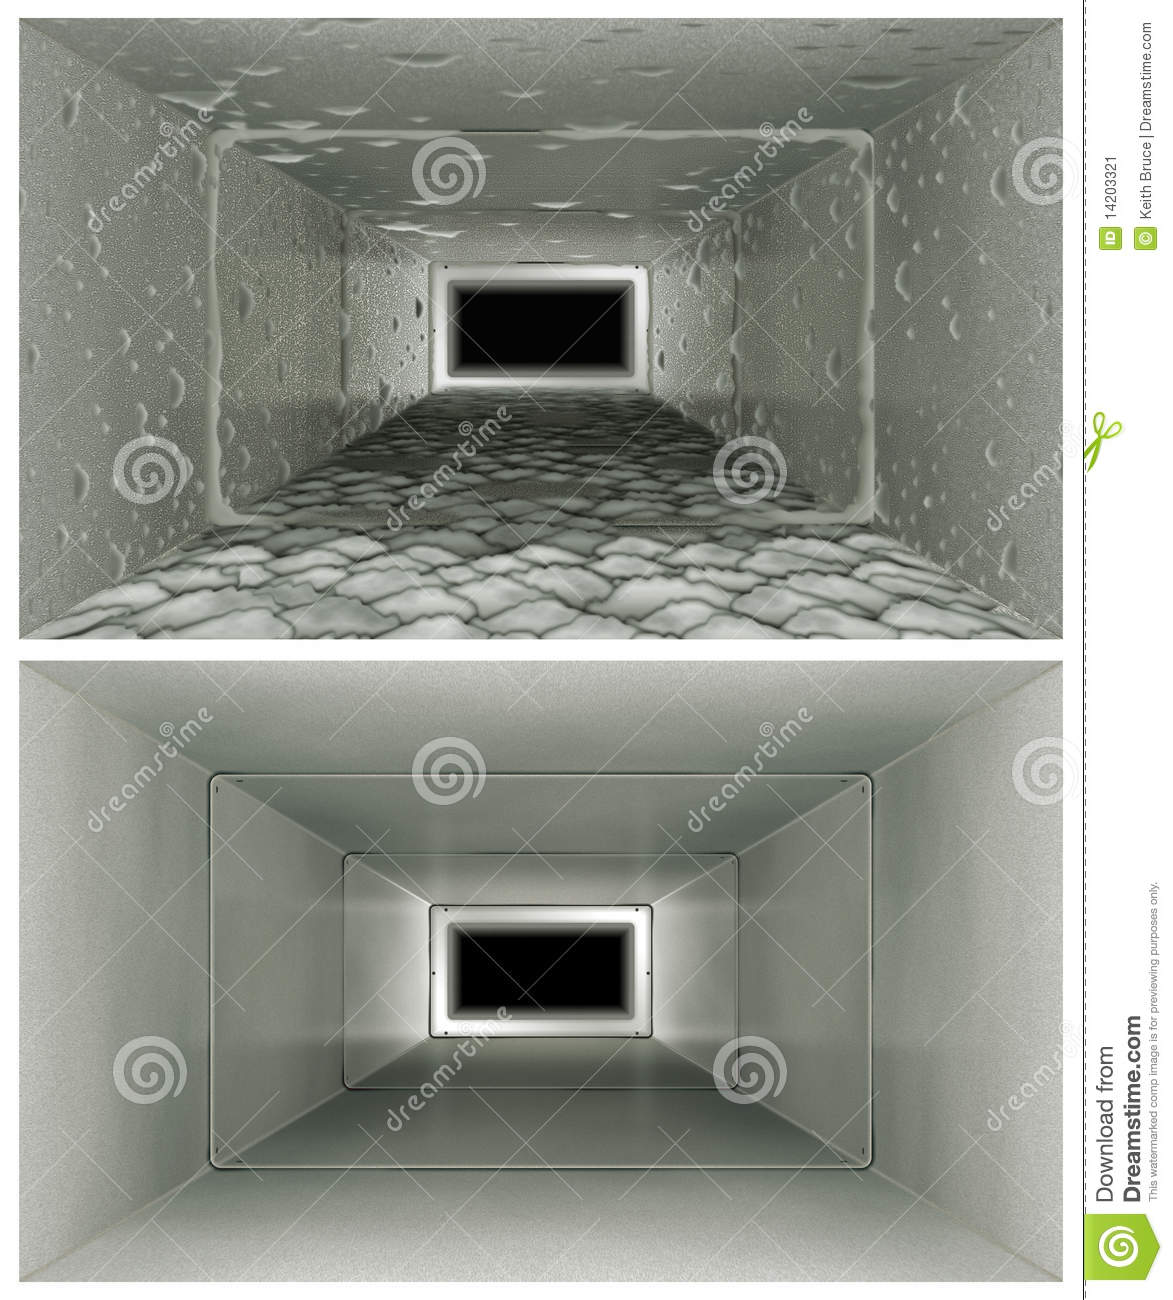 Air Duct Cleaning Before Amp After Stock Illustration